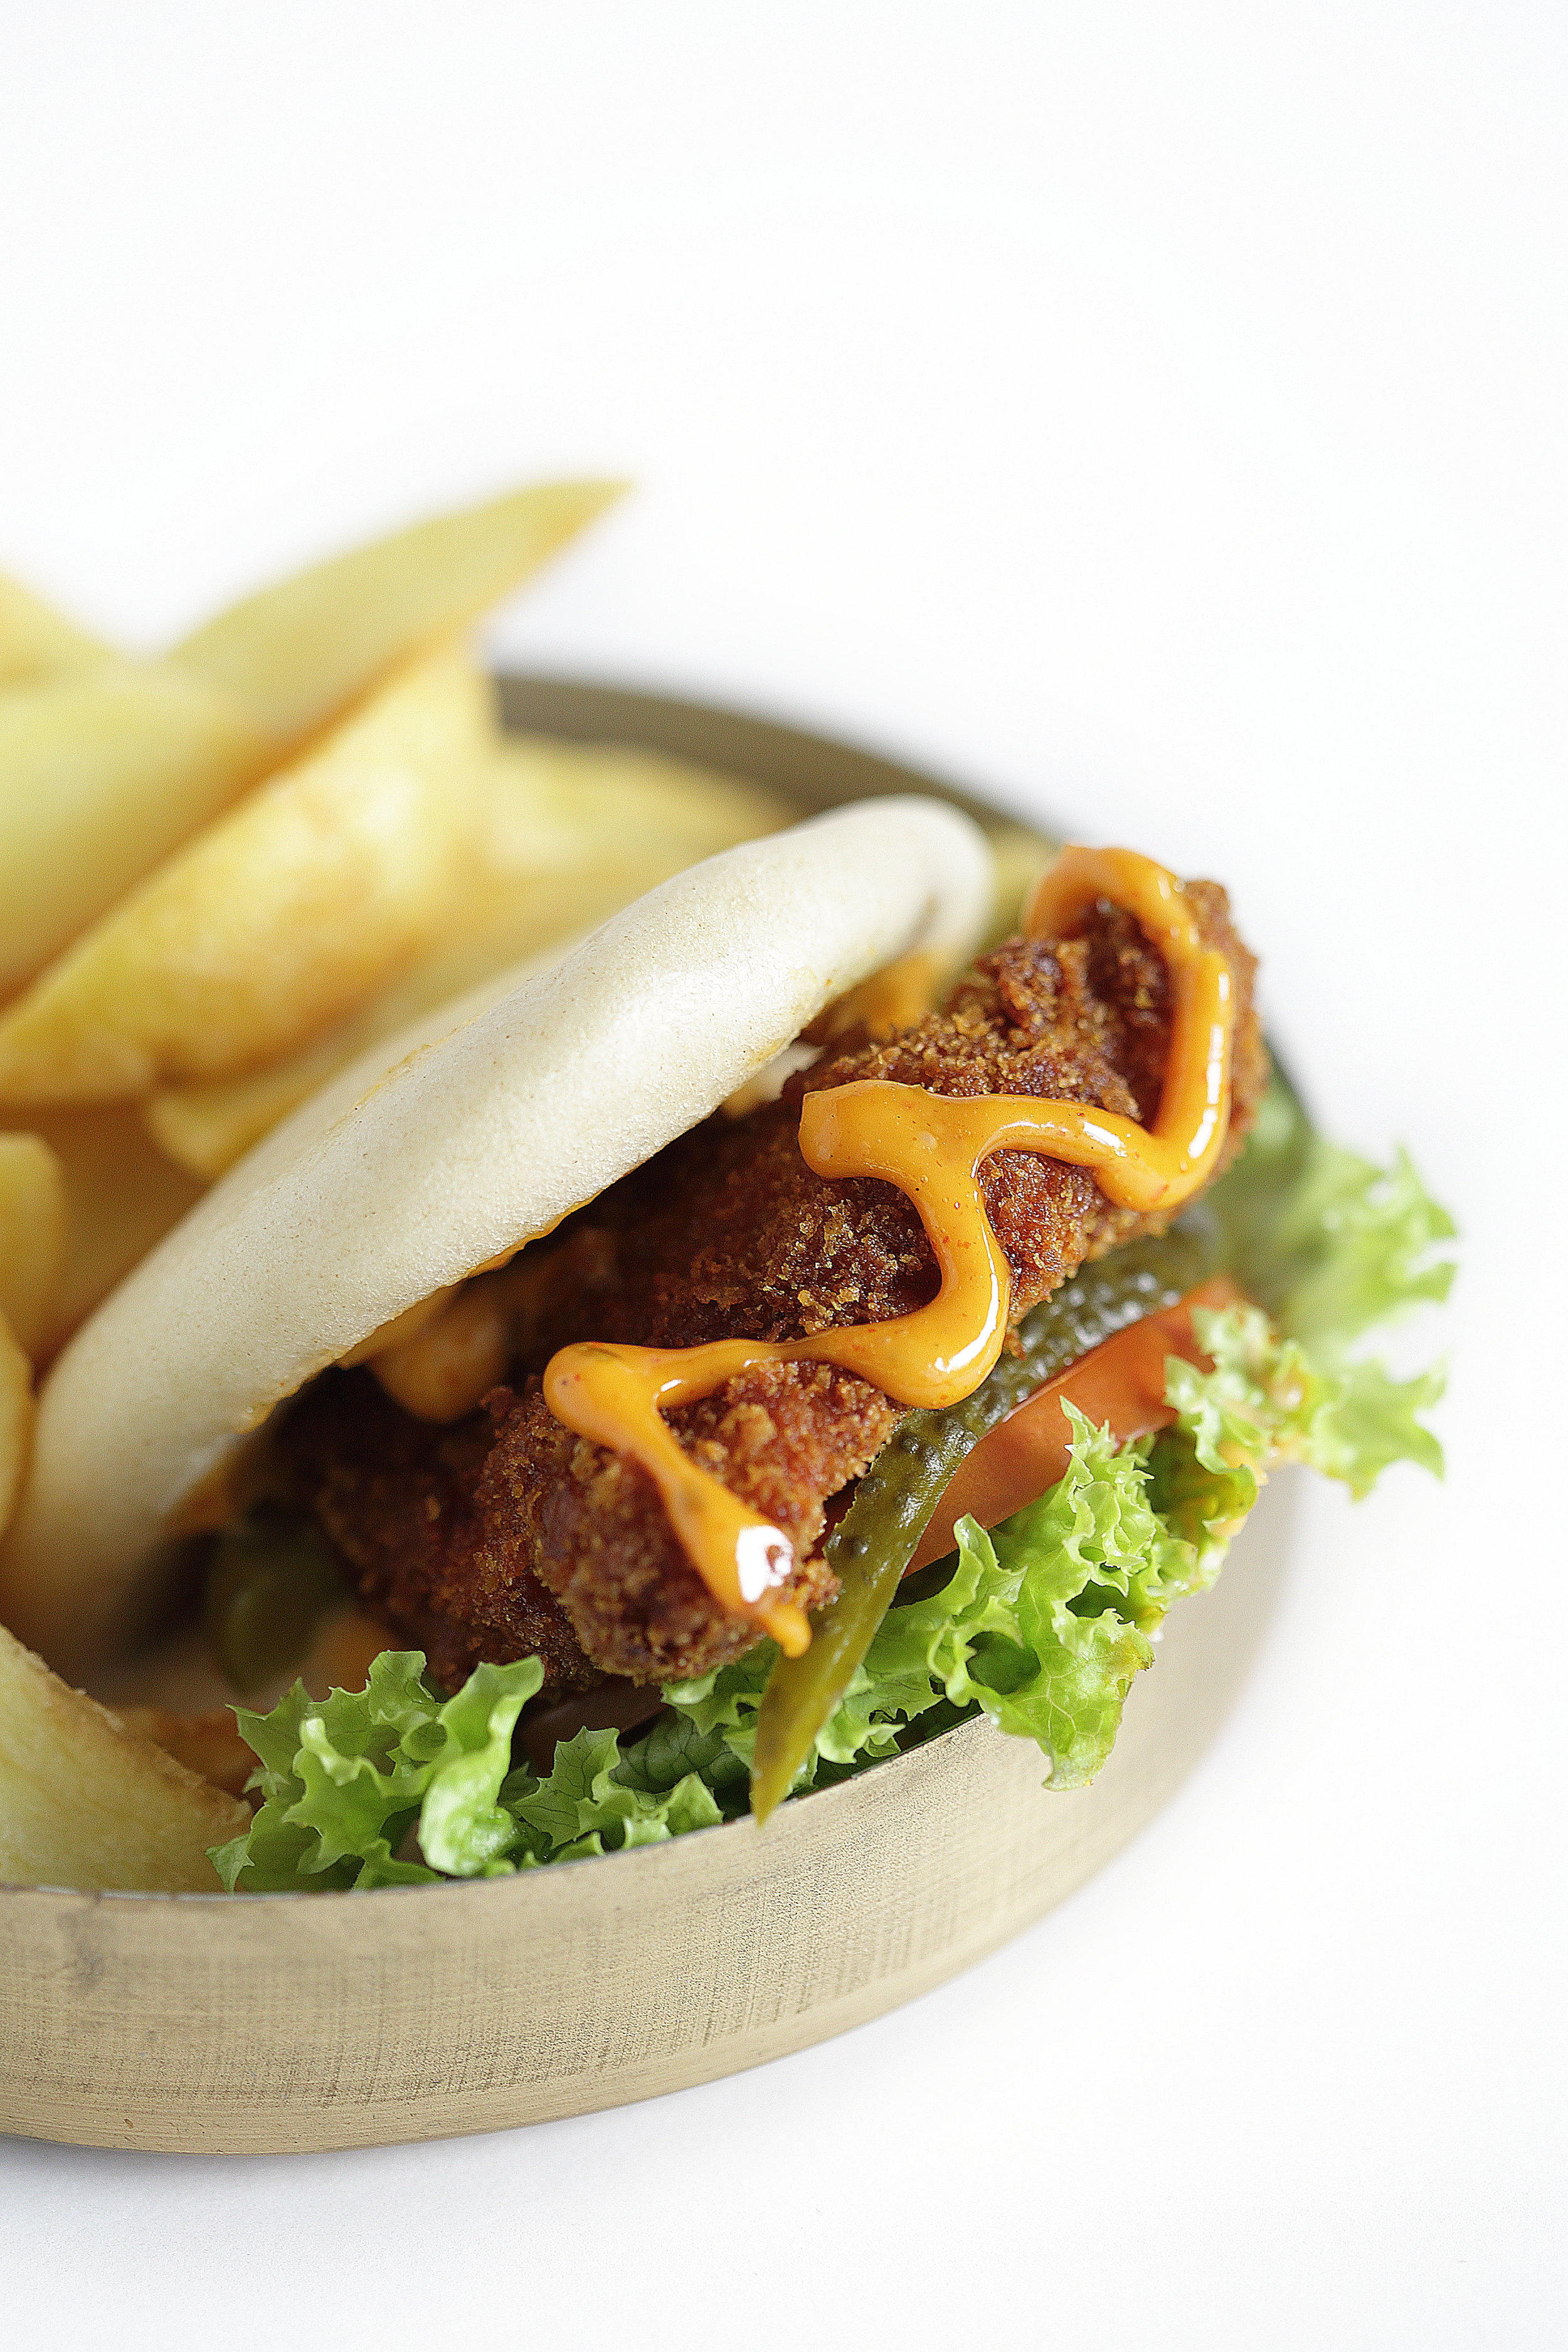 CHOOSE YOUR FILLING - Falafel (VG) Tuna Mayo Vegan (VG) Fried Chicken CHICKEN SHISHFried Cod Pulled Pork Pulled Lamb Burger Pulled Beef Duck Confit Smoked Salmon